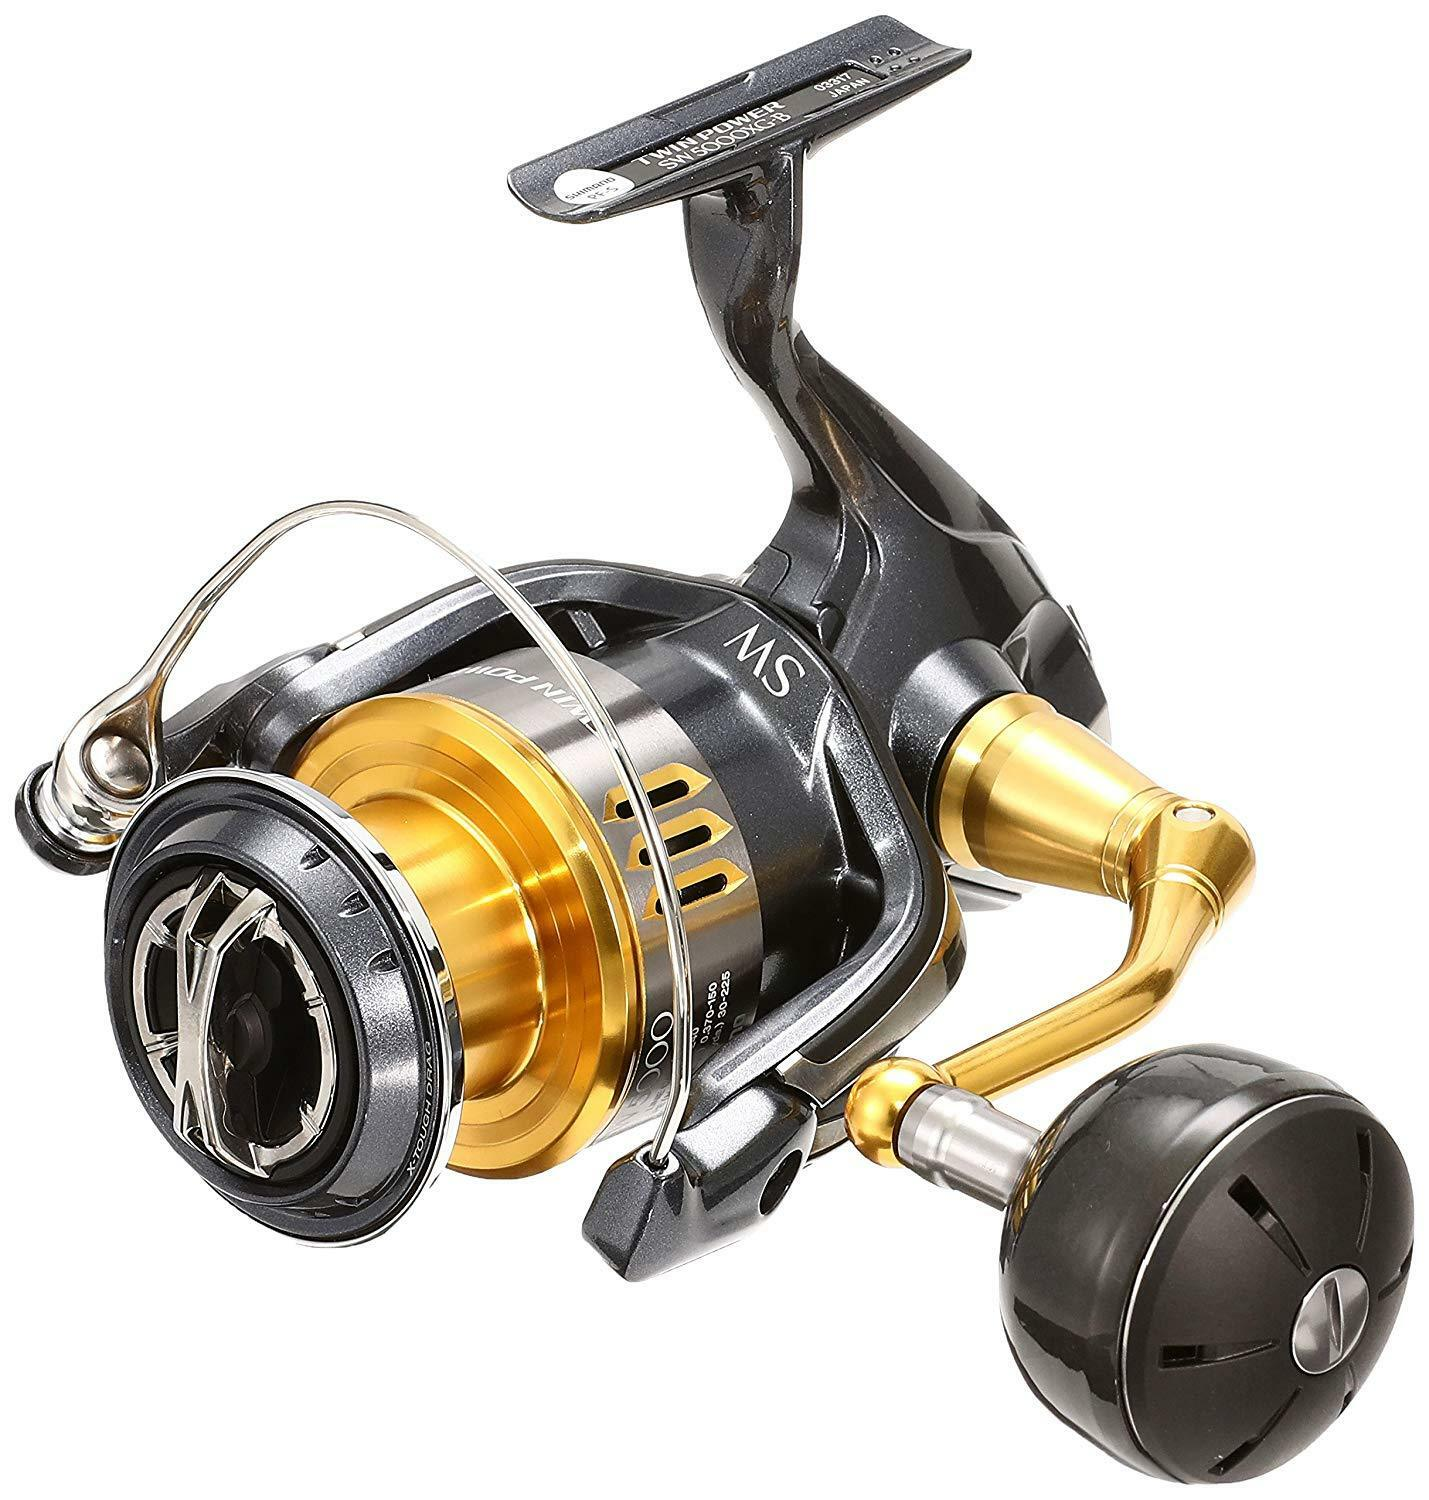 Shiuomoo 15 Twin energia SW5000XG pesca Spinning Reel From Japan